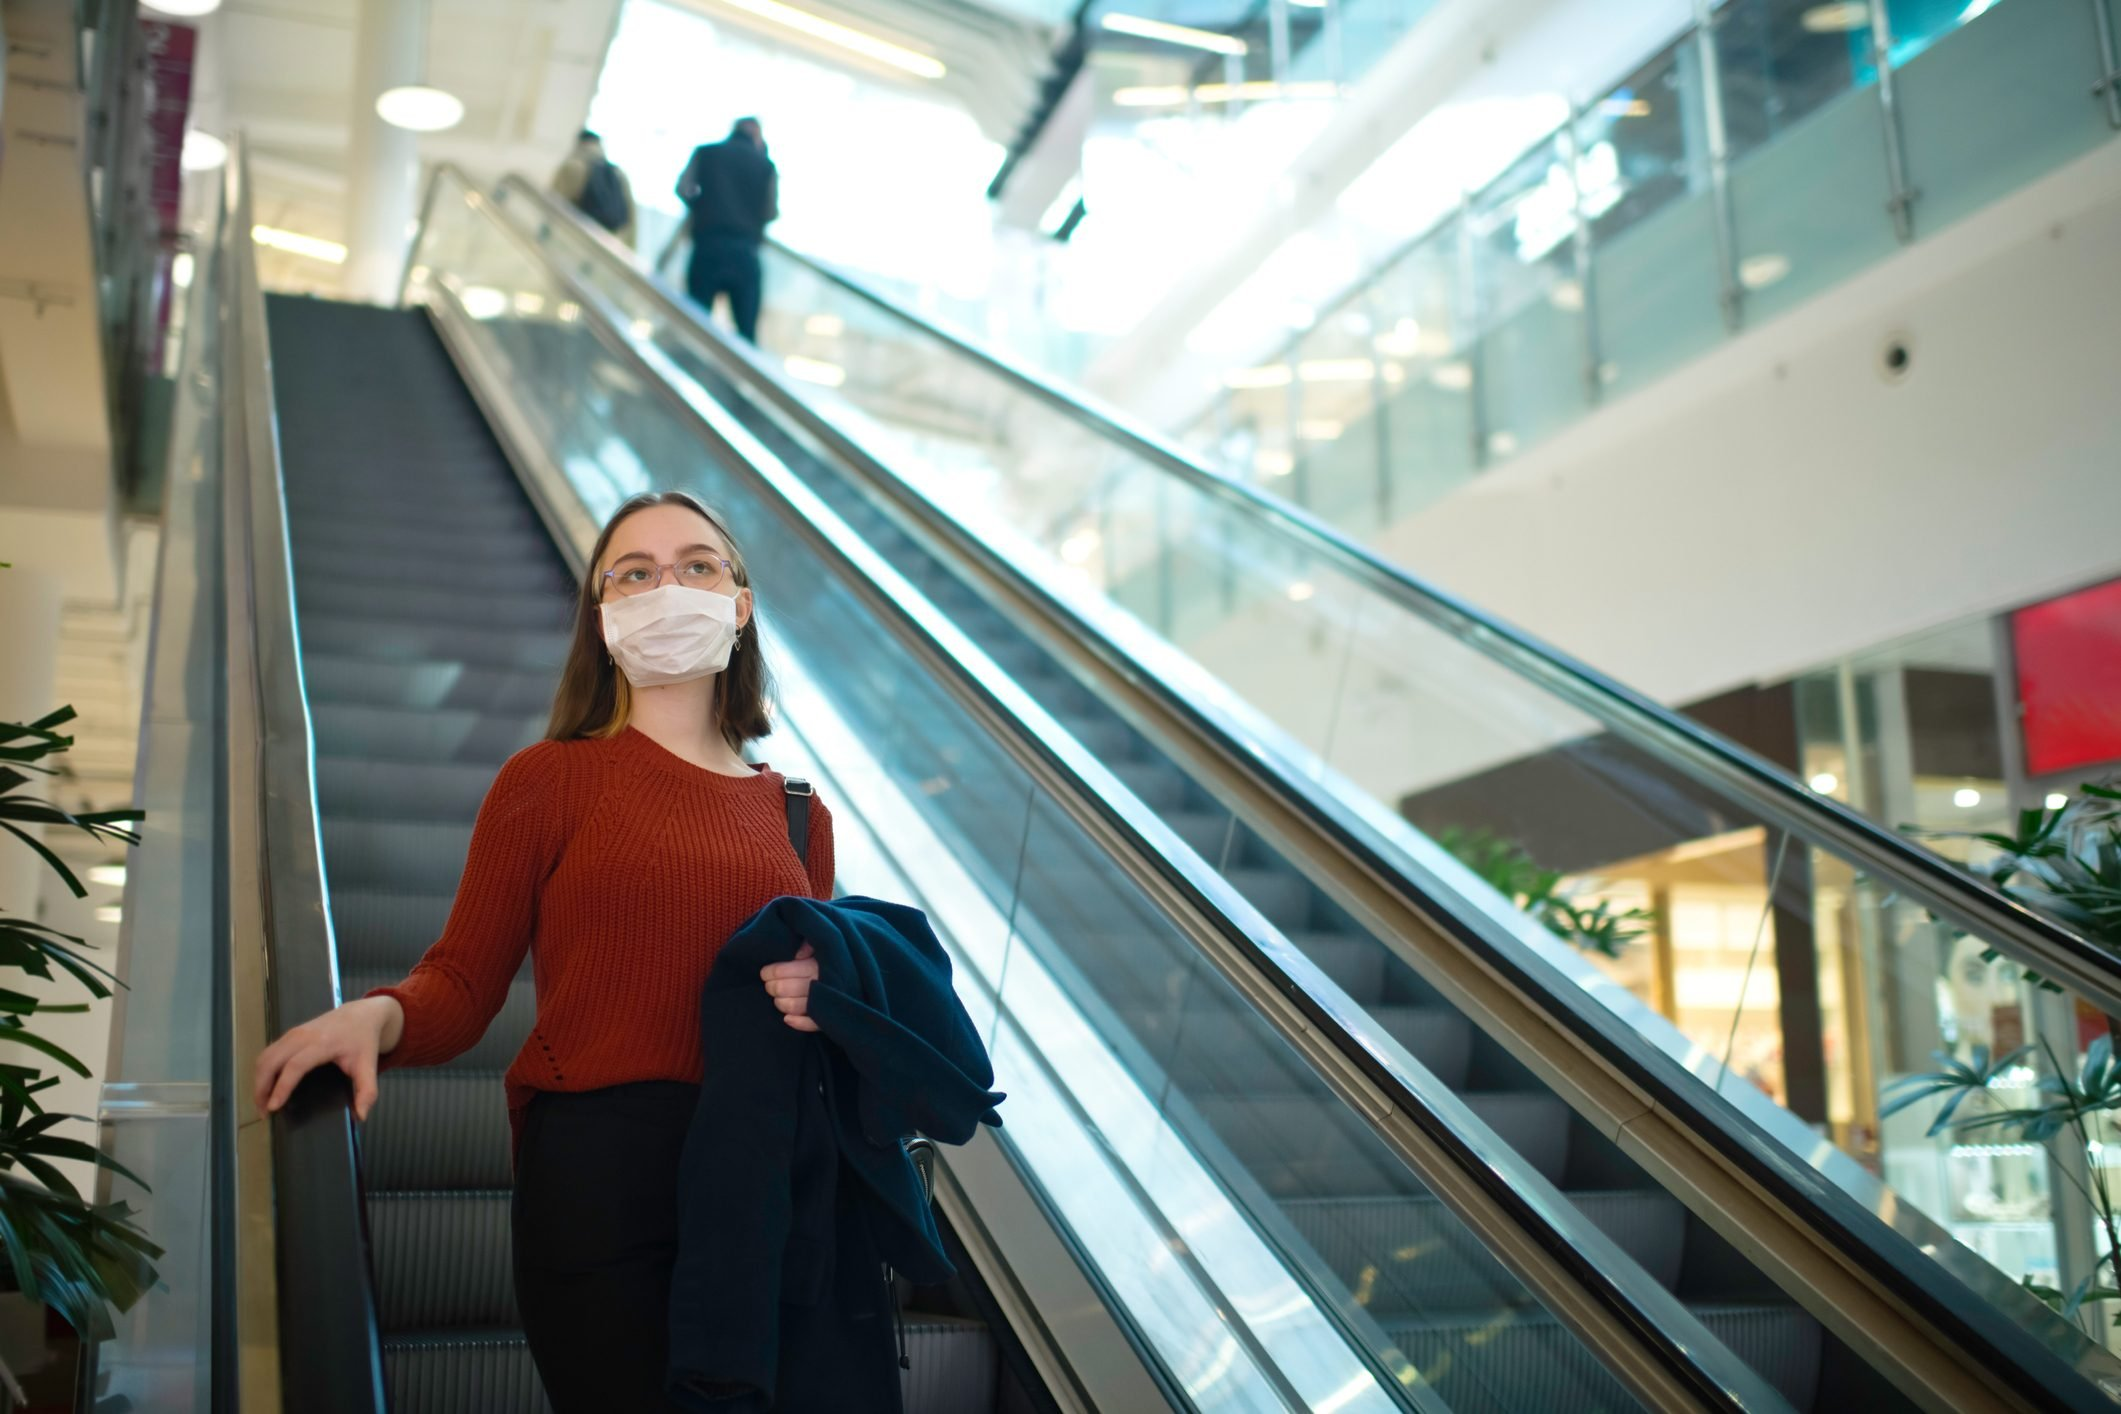 Young girl on an escalator in shopping mall wearing medical mask to protect herself against virus or pollution